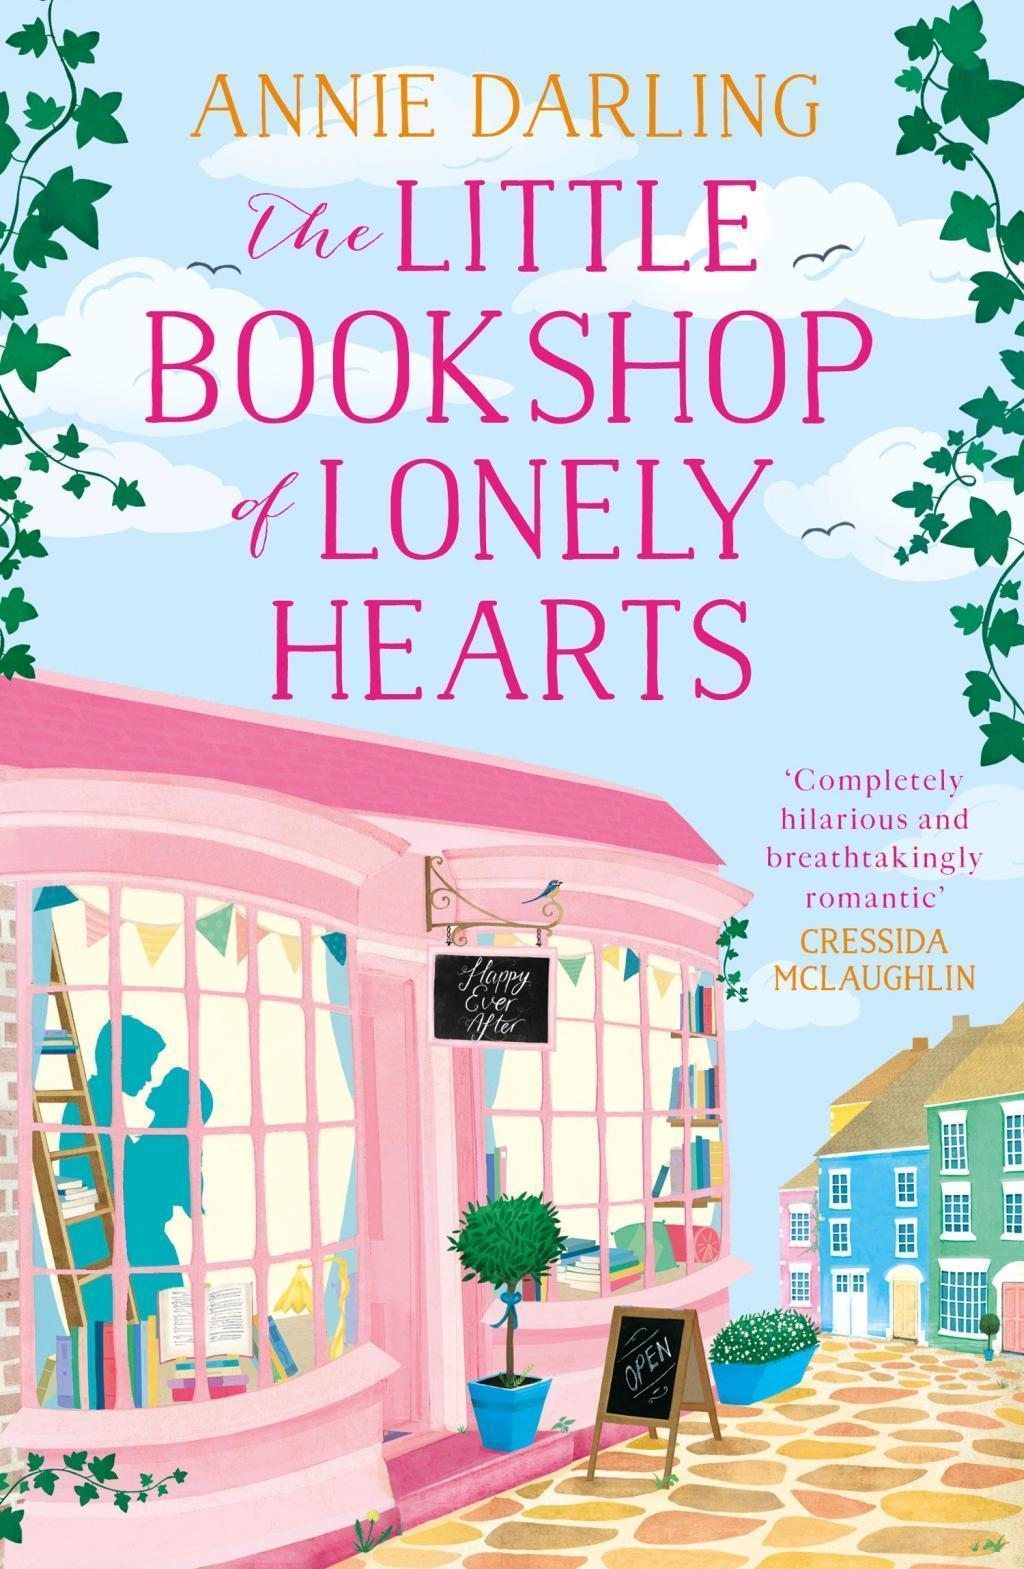 The Little Bookshop of Lonely Hearts: A feel-good funny summer romance